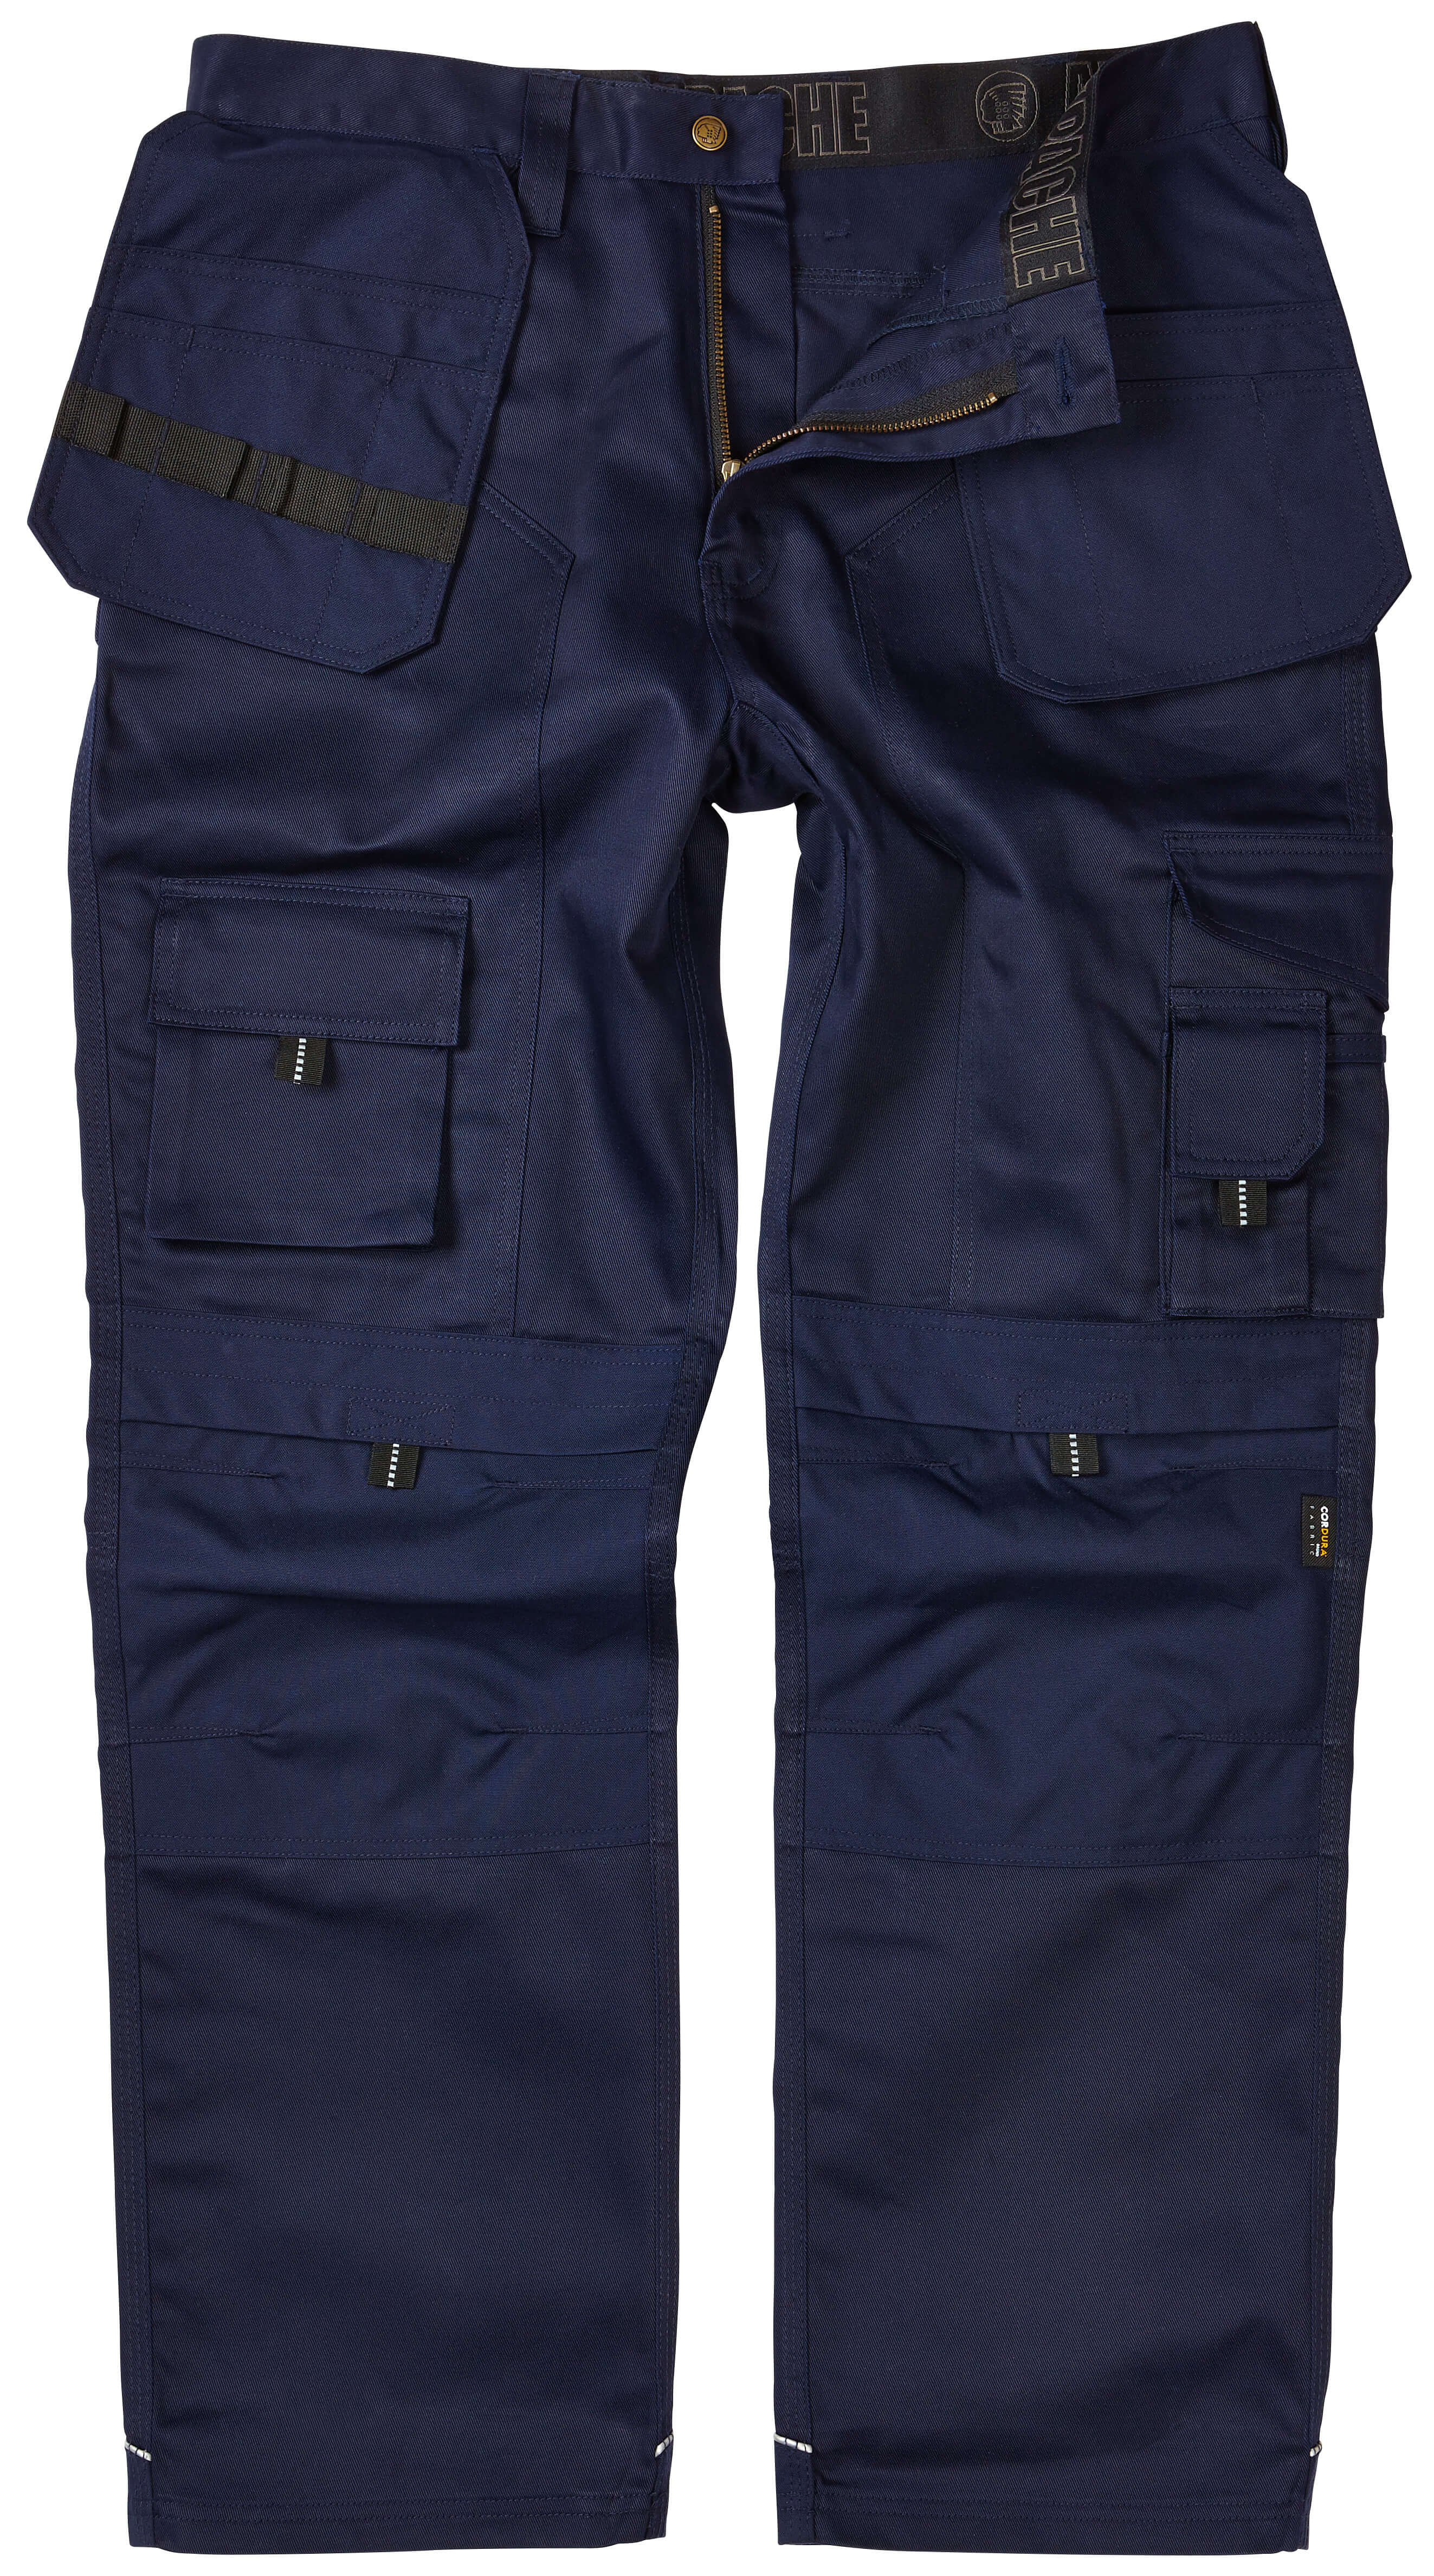 Apache Navy Knee Pad Holster Trouser